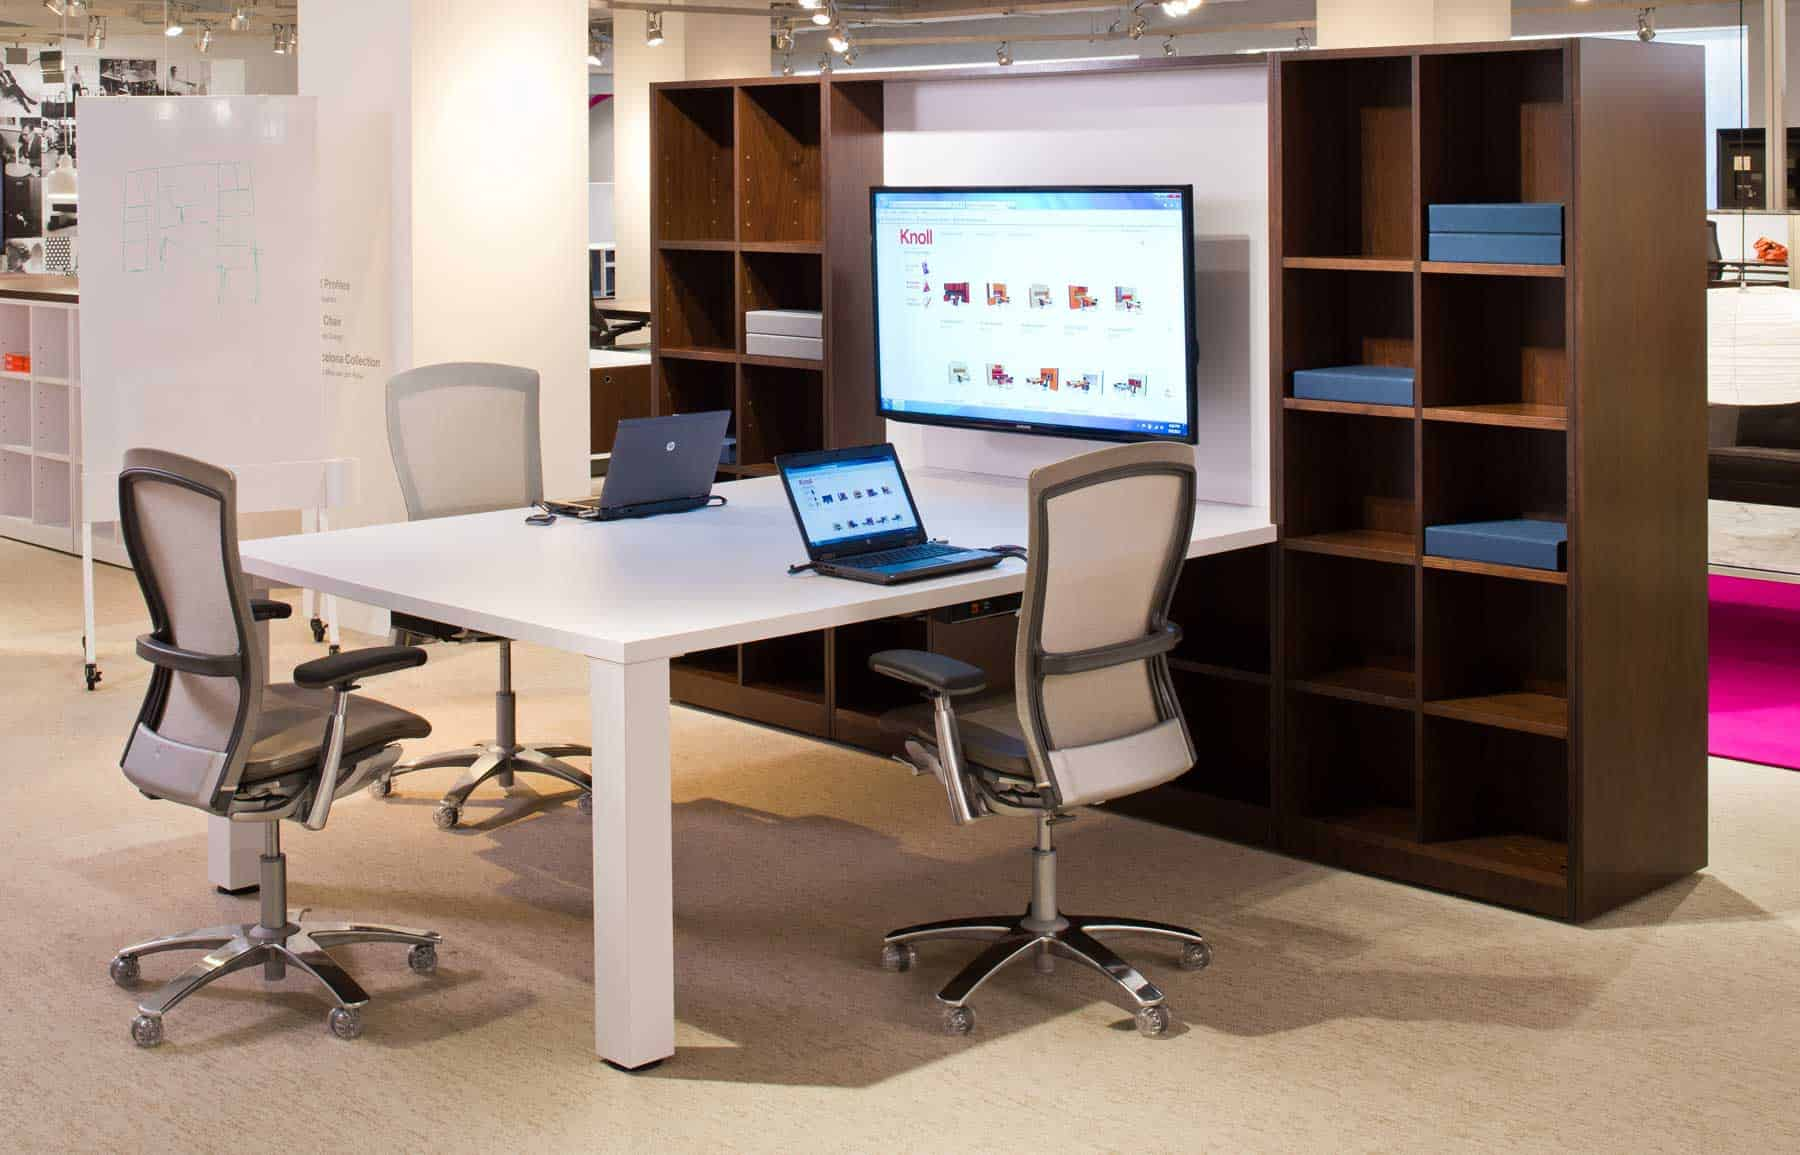 knoll office furniture + technology = a powerful workplace